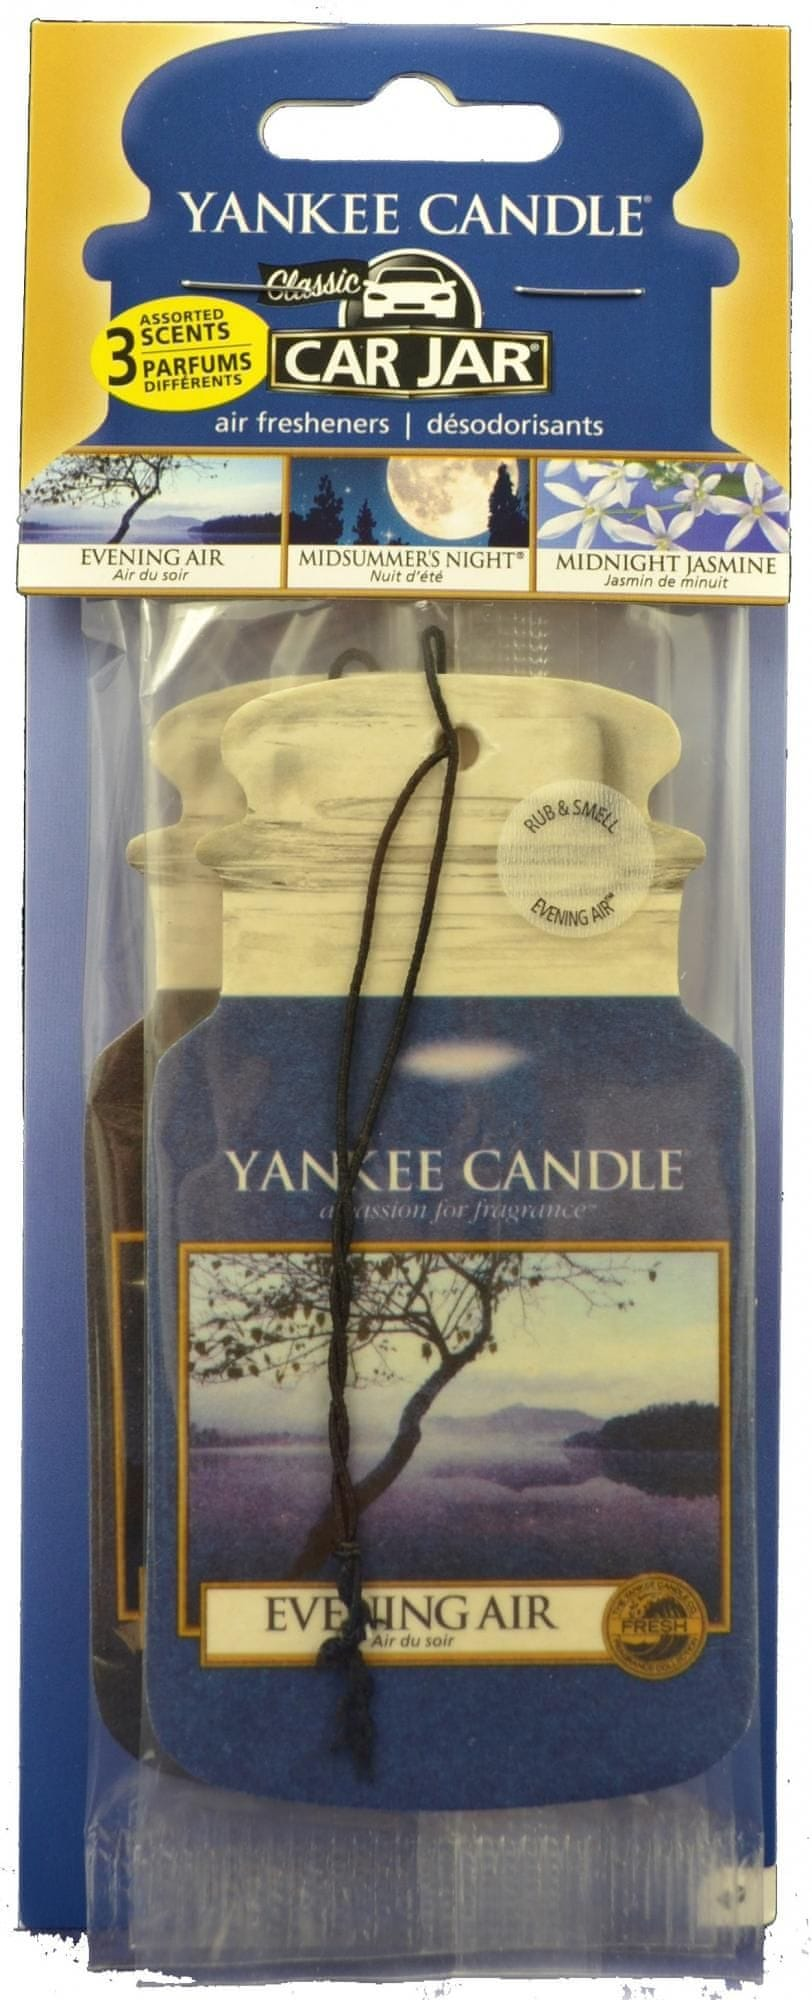 Yankee Candle Car Jar papírová visačka Evening Air, Midsummer's Night, Midnight Jasmine 3 ks